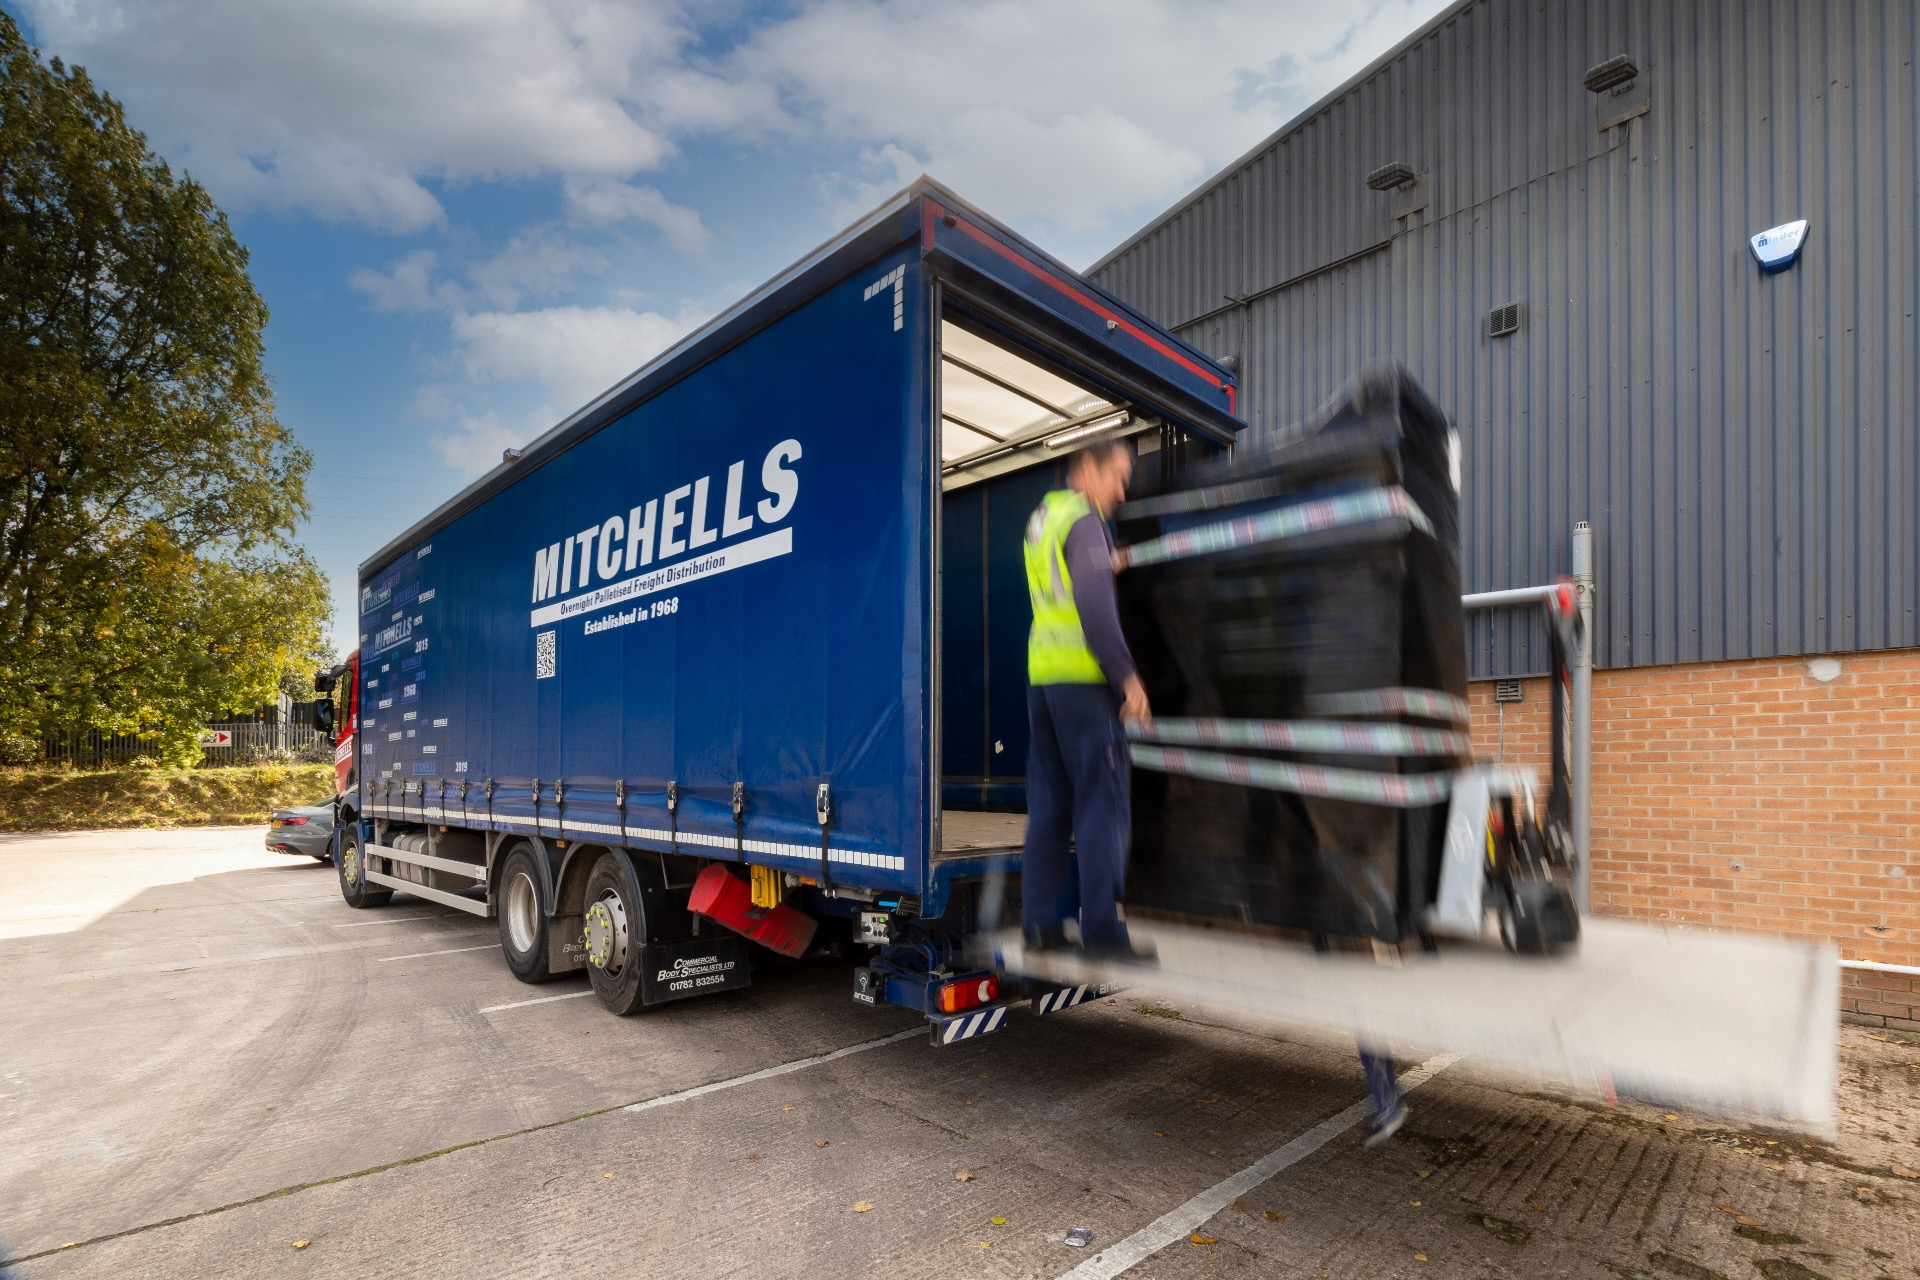 Mitchells driver is one of the job roles available